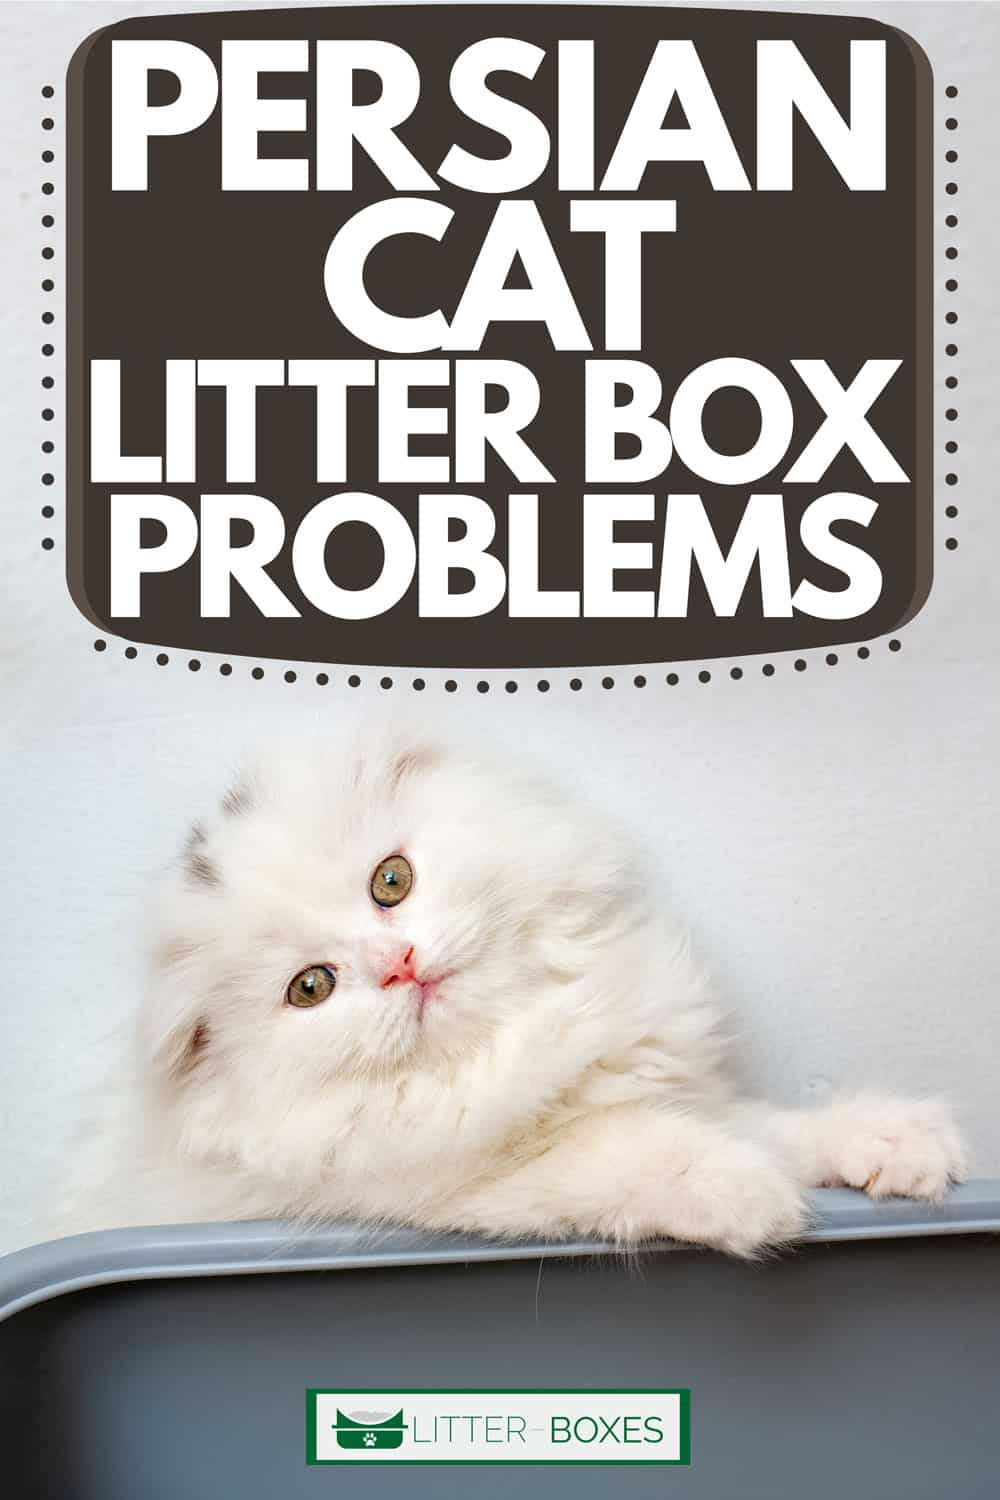 A white Persian cat looking at the camera, Persian Cat Litter Box Problems